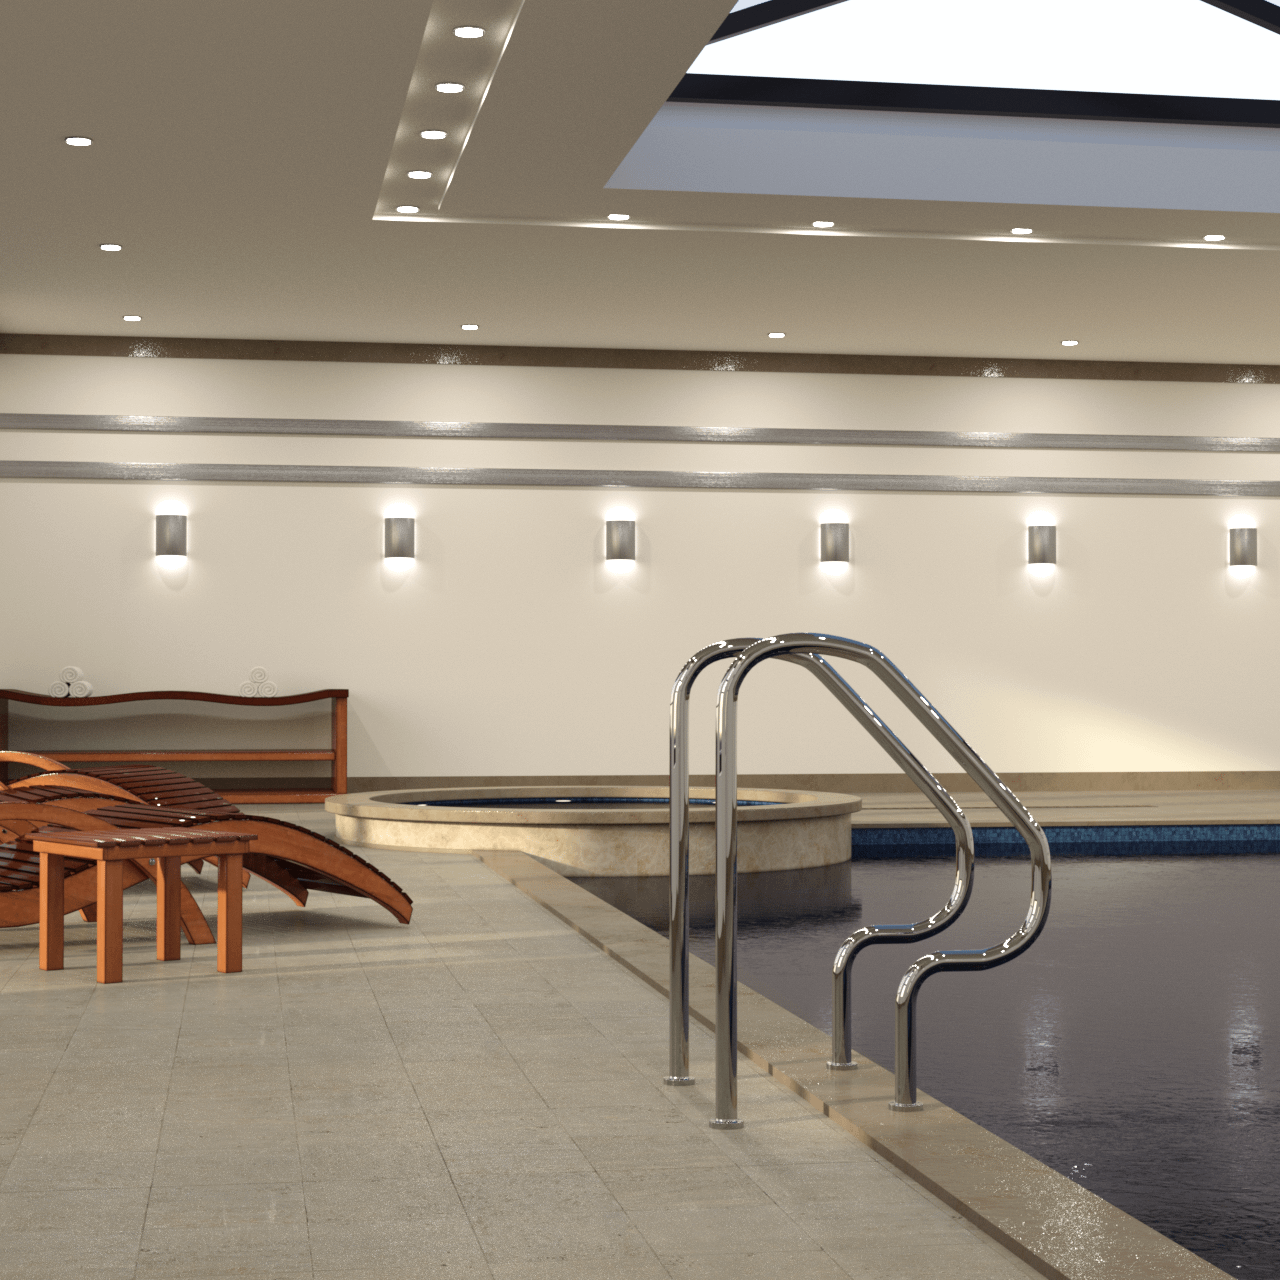 Rendering of a pool entrance and some deck chairs in the background